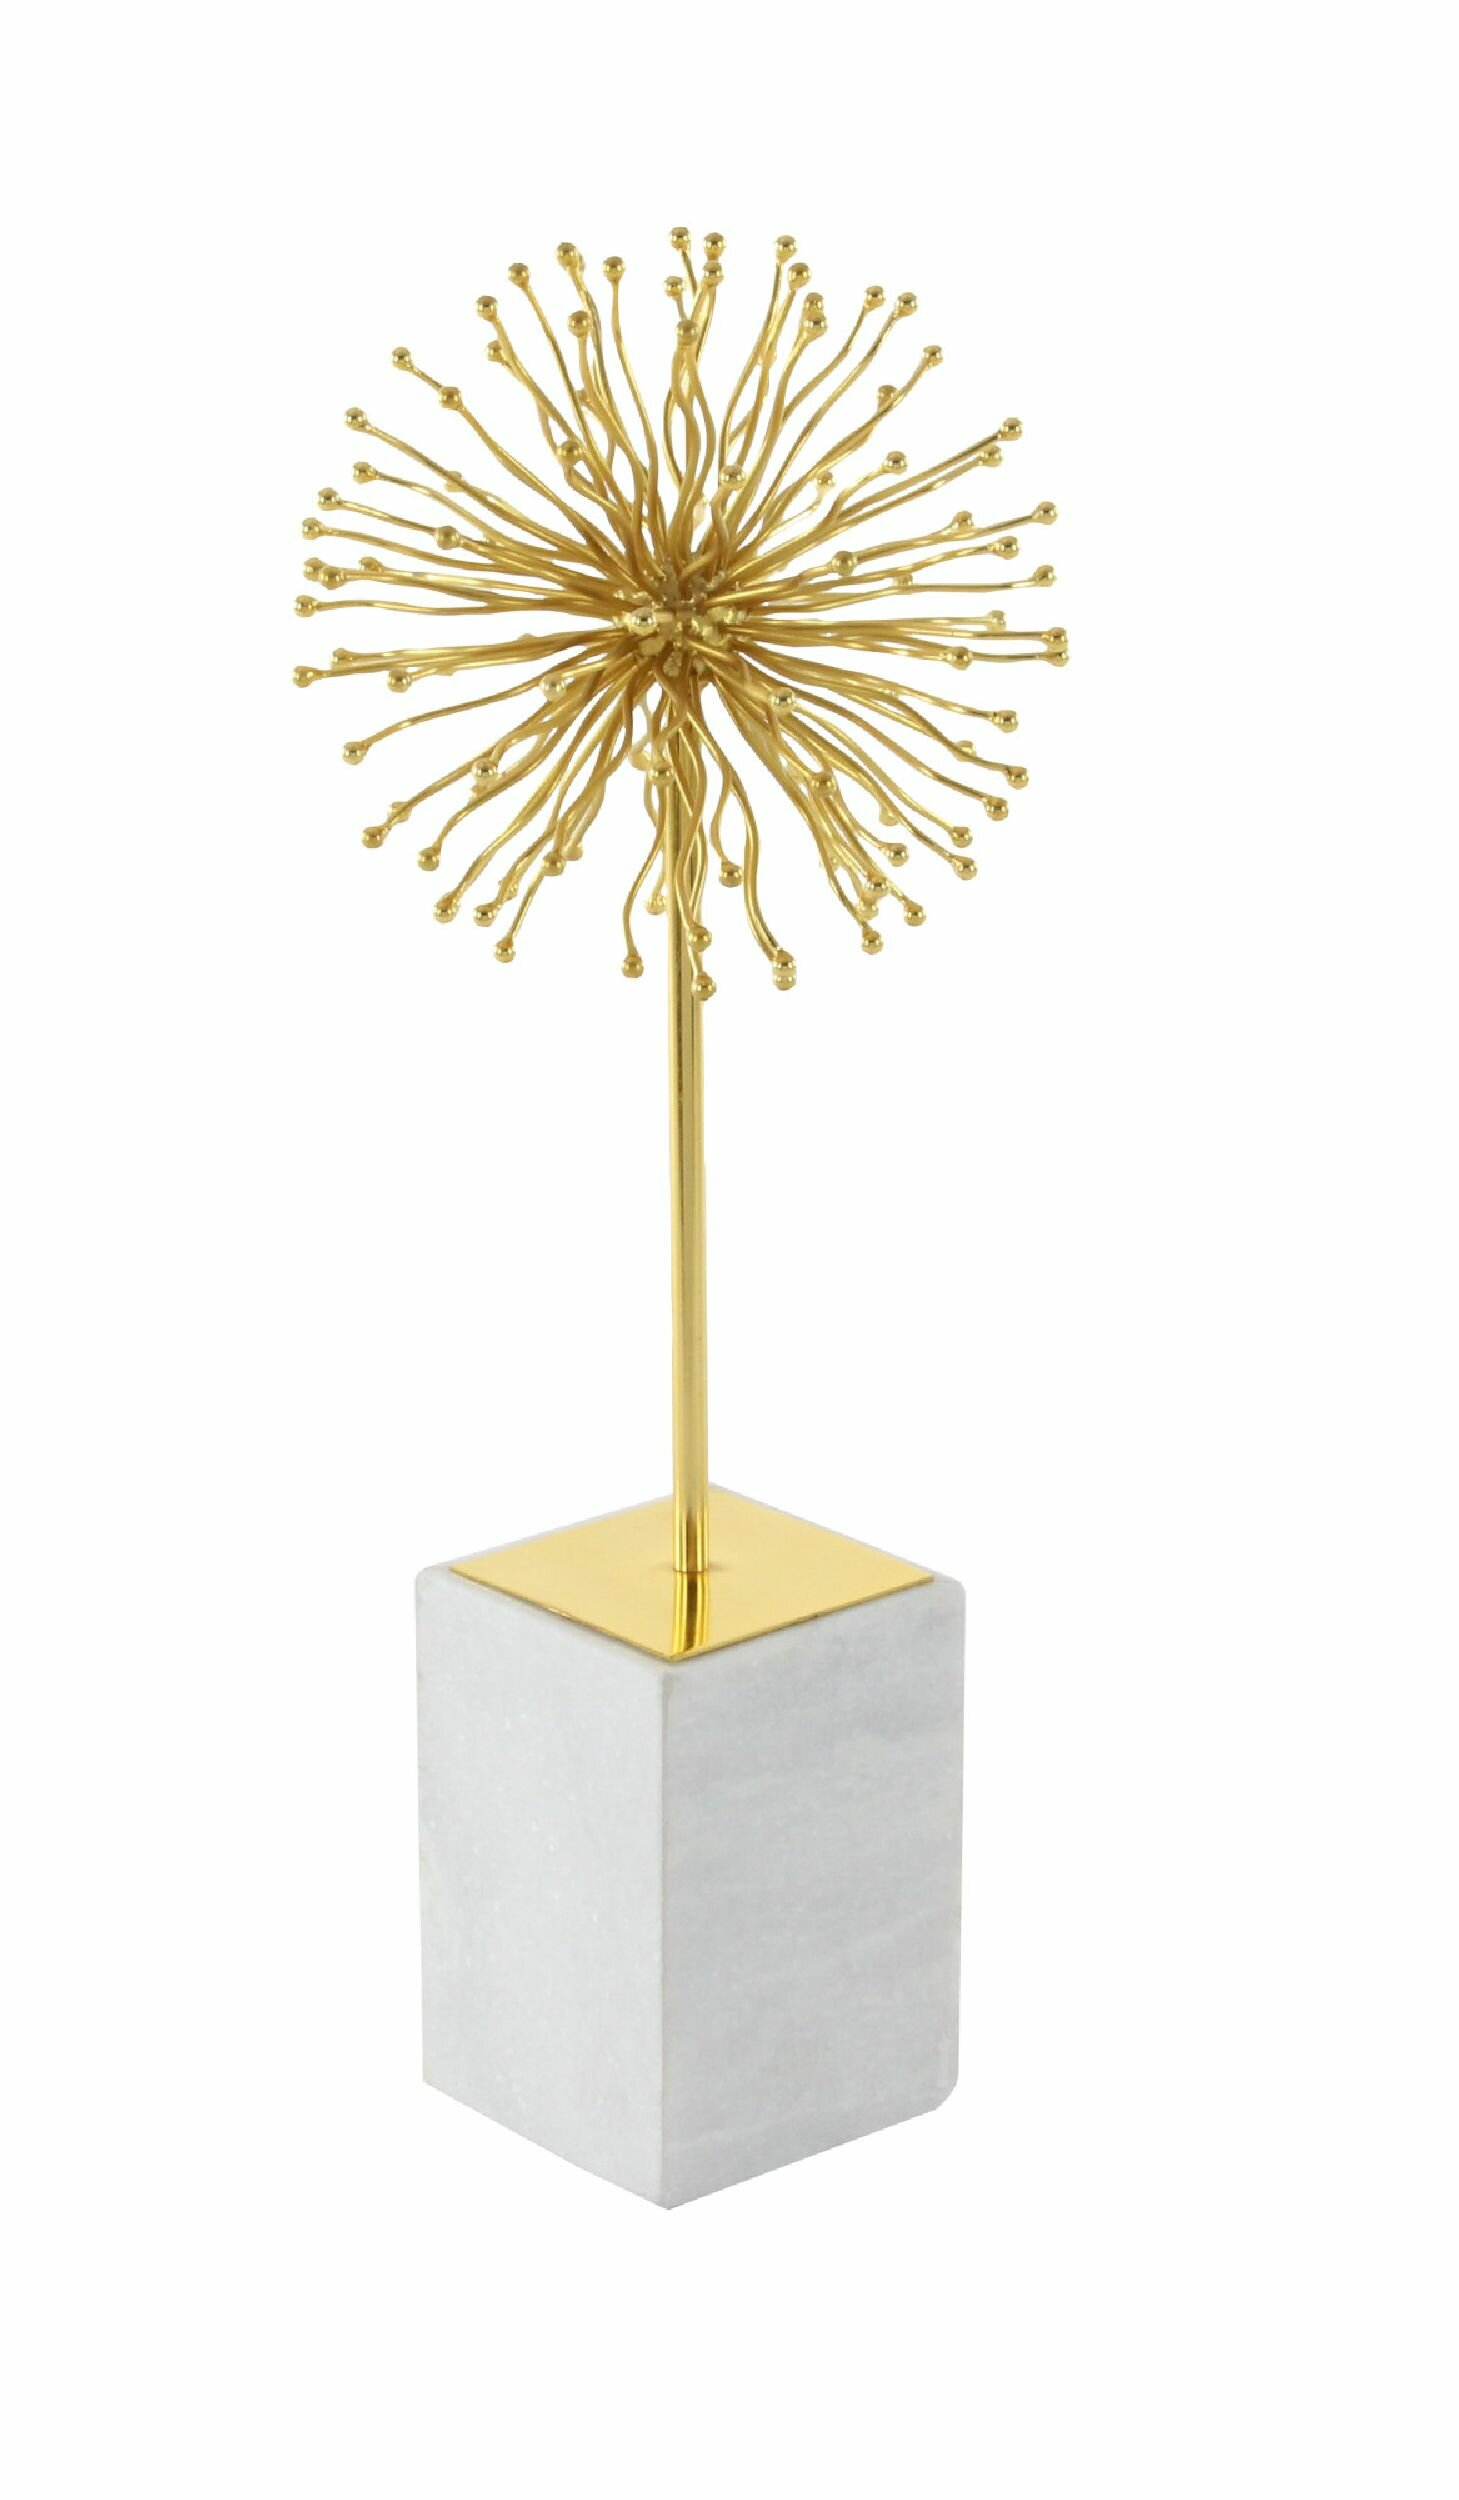 Hungerford Marble Star Sculpture Within Set Of 3 Contemporary 6, 9, And 11 Inch Gold Tin Starburst Sculptures (View 6 of 30)